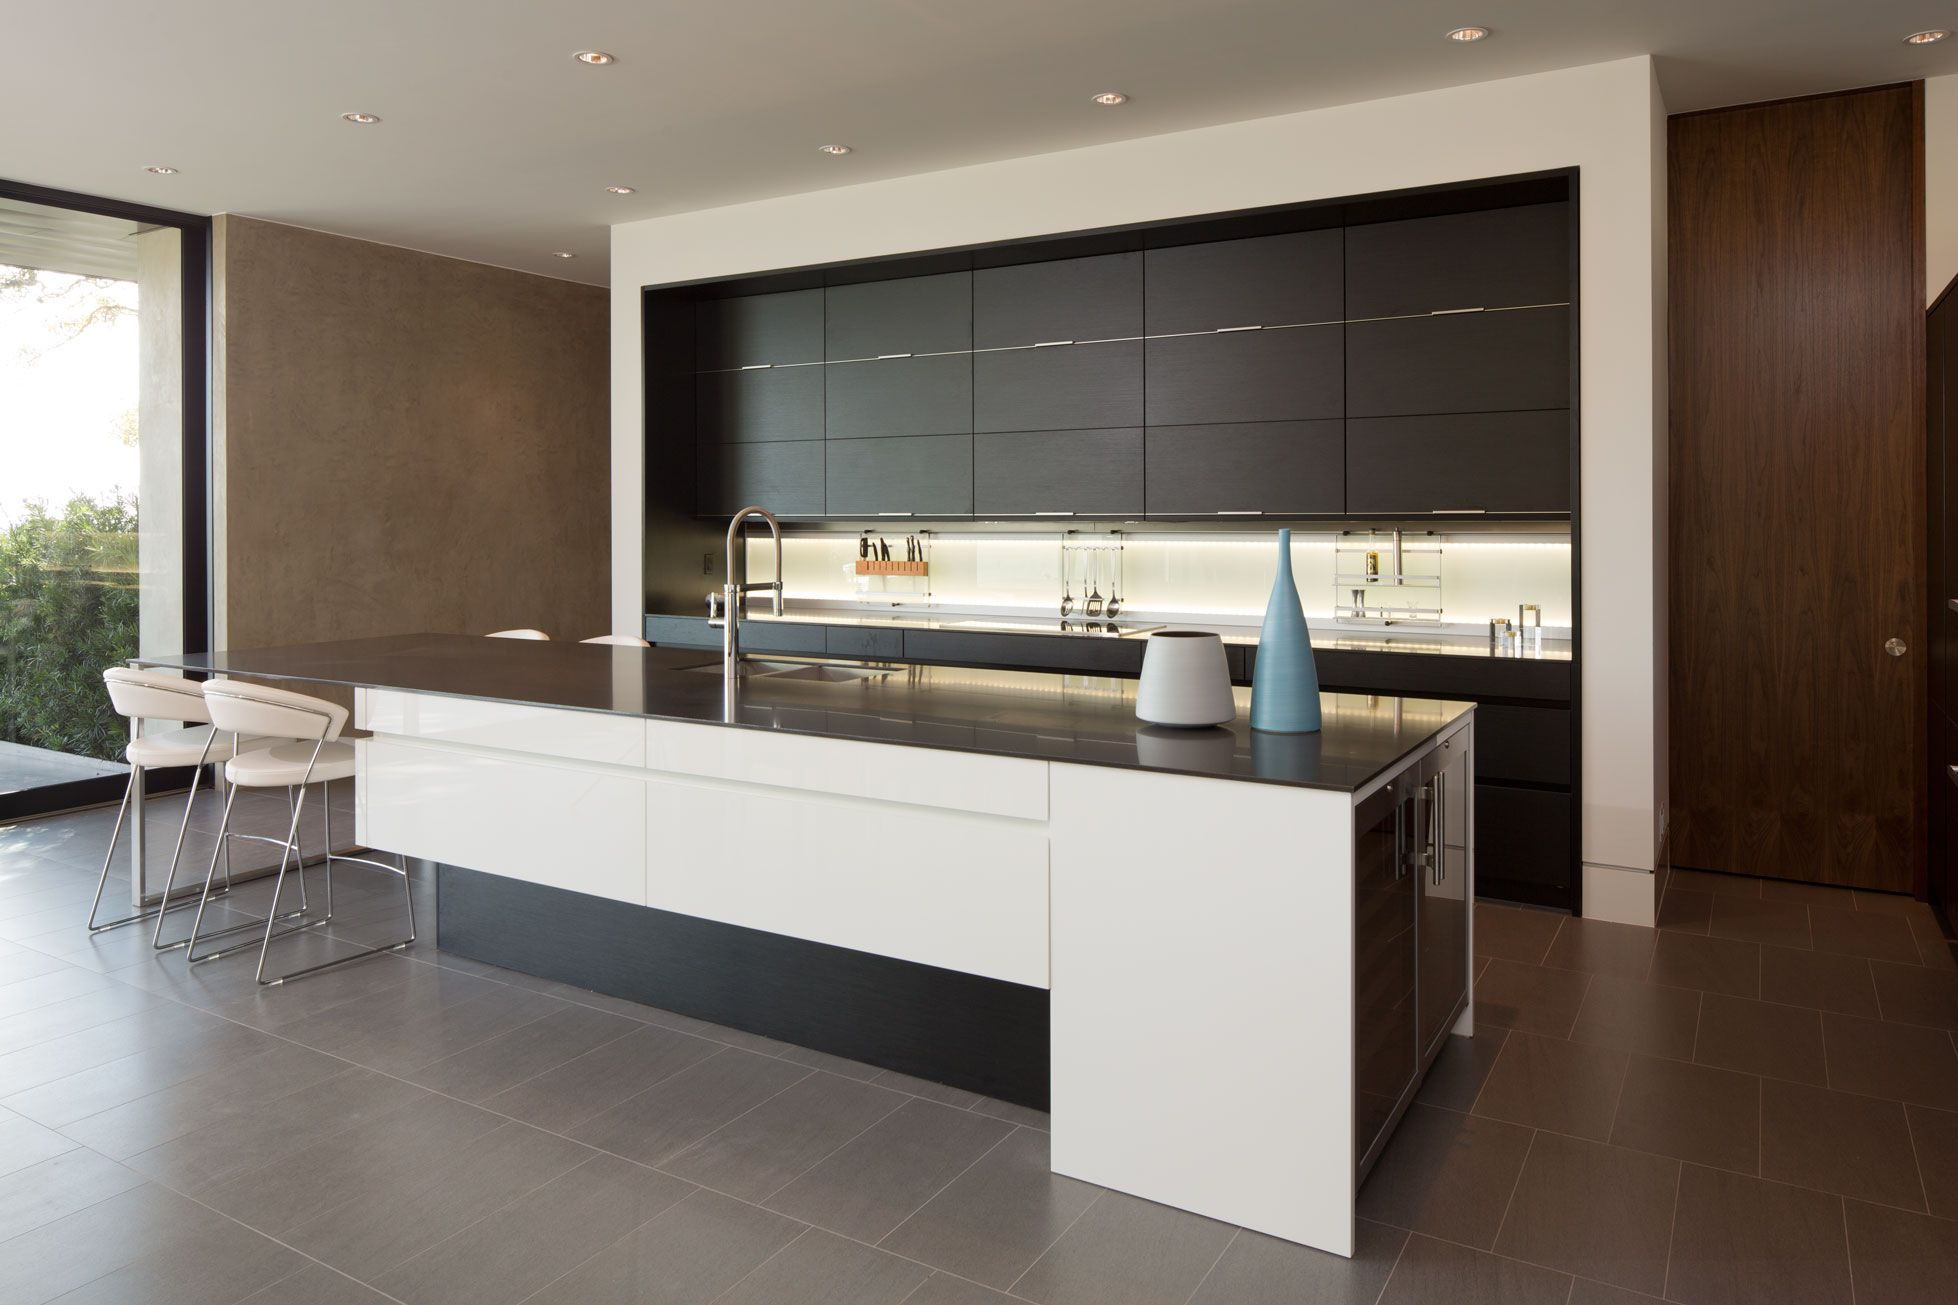 Skyline Project Austin Tx Kitchen Cabinets By Leicht Program Orlando Kh257 Black Sediment With